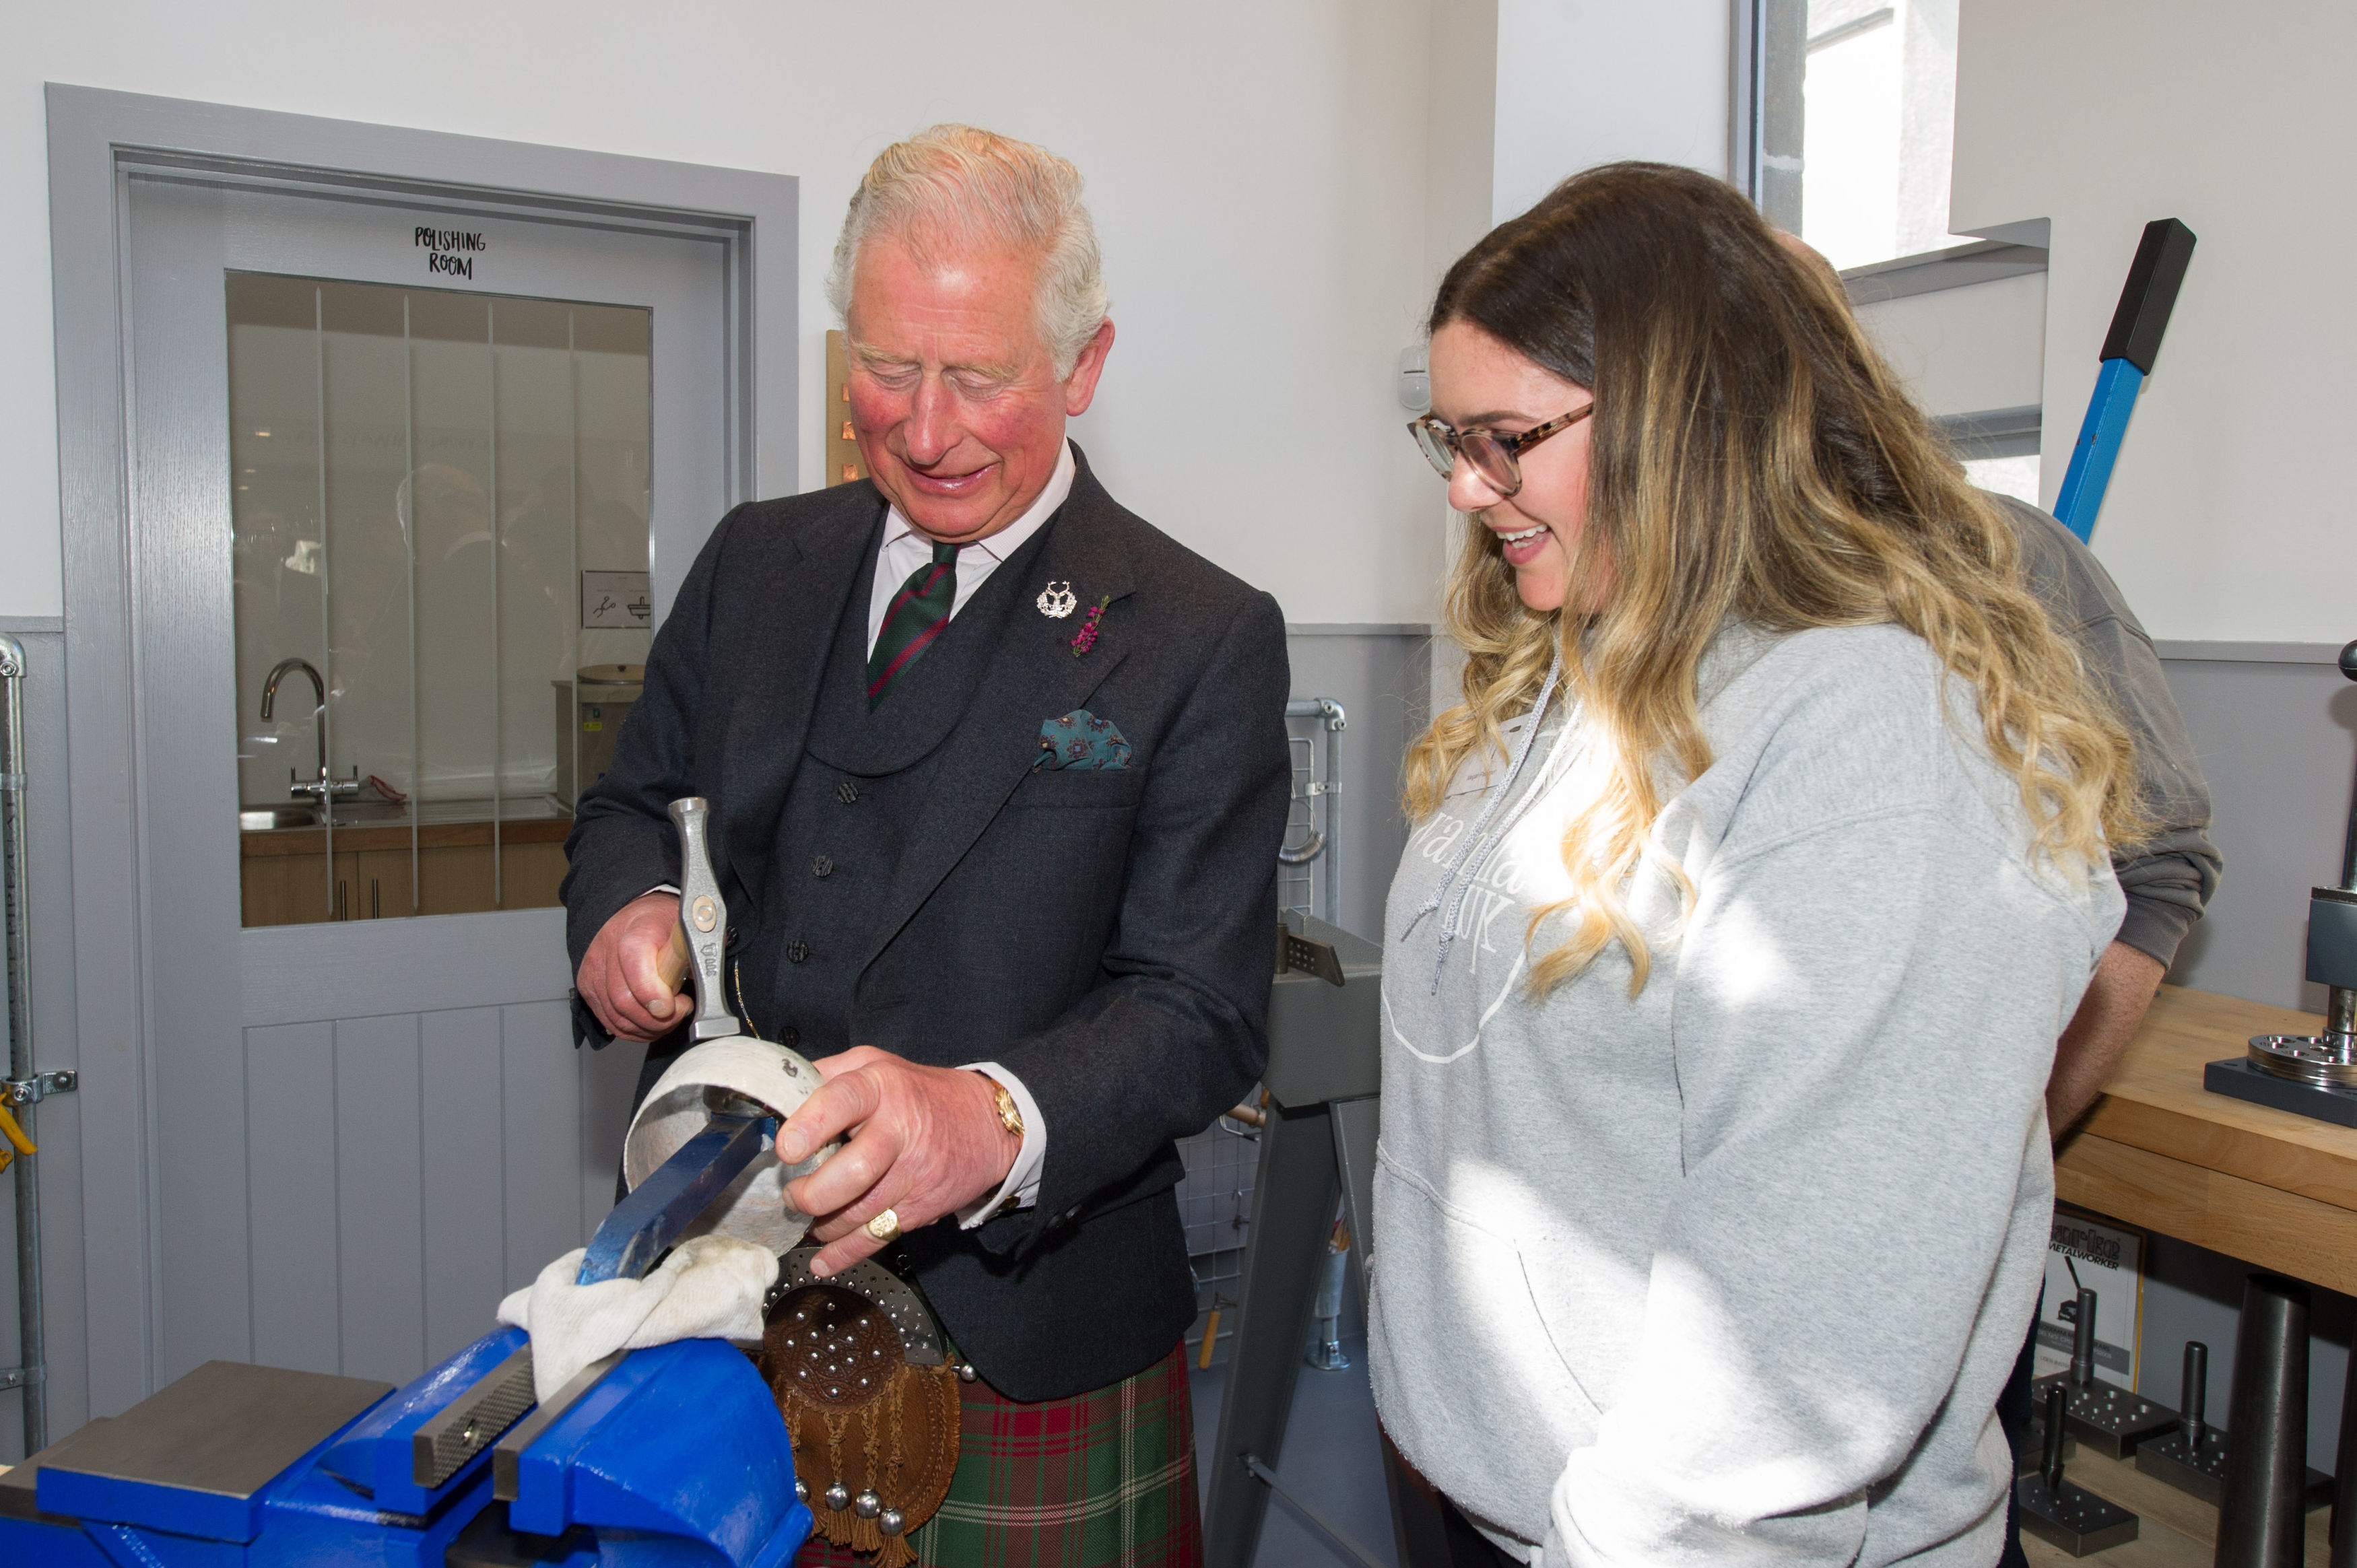 The Prince of Wales, known as the Duke of Rothesay while in Scotland, during a visit to Vanilla Ink in Banff, a Social Enterprise business that is bringing Silversmithing and Jewellery Making skills development opportunities to communities in Scotland. Photo: Jason Hedges/Press and Journal/PA Wire